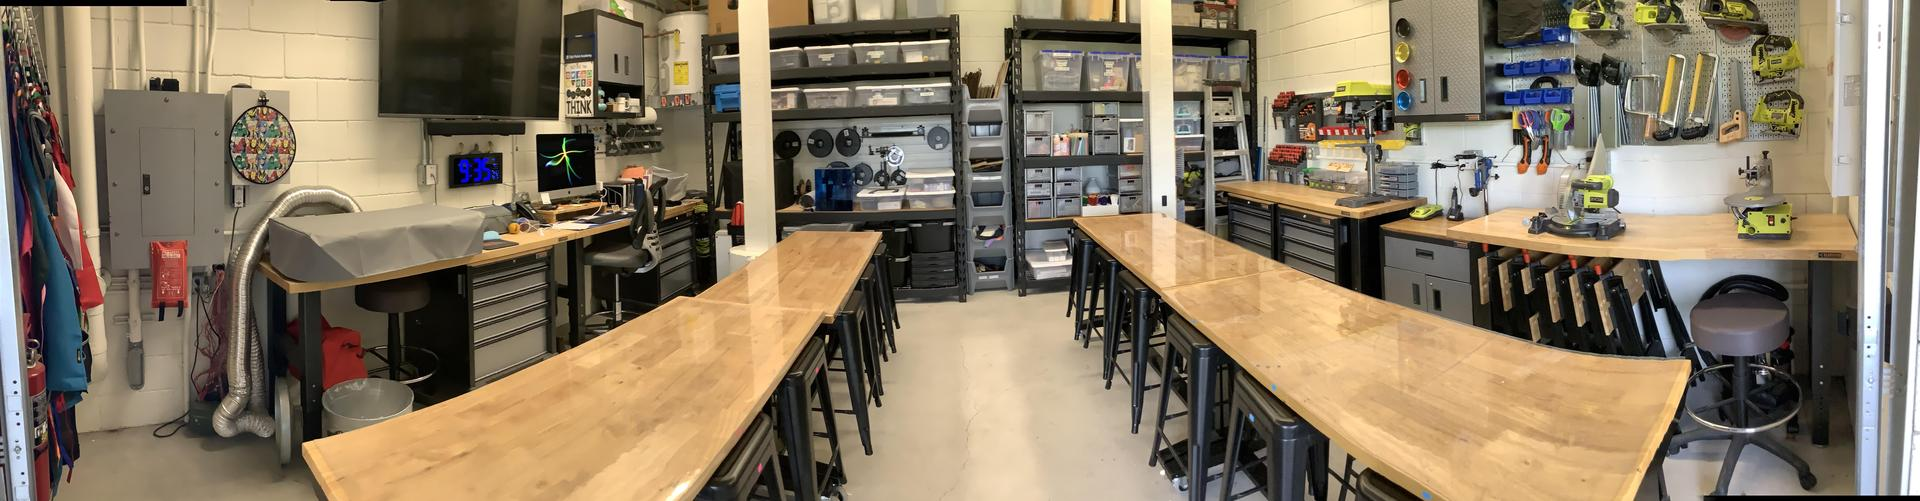 Panoramic view of the maker space